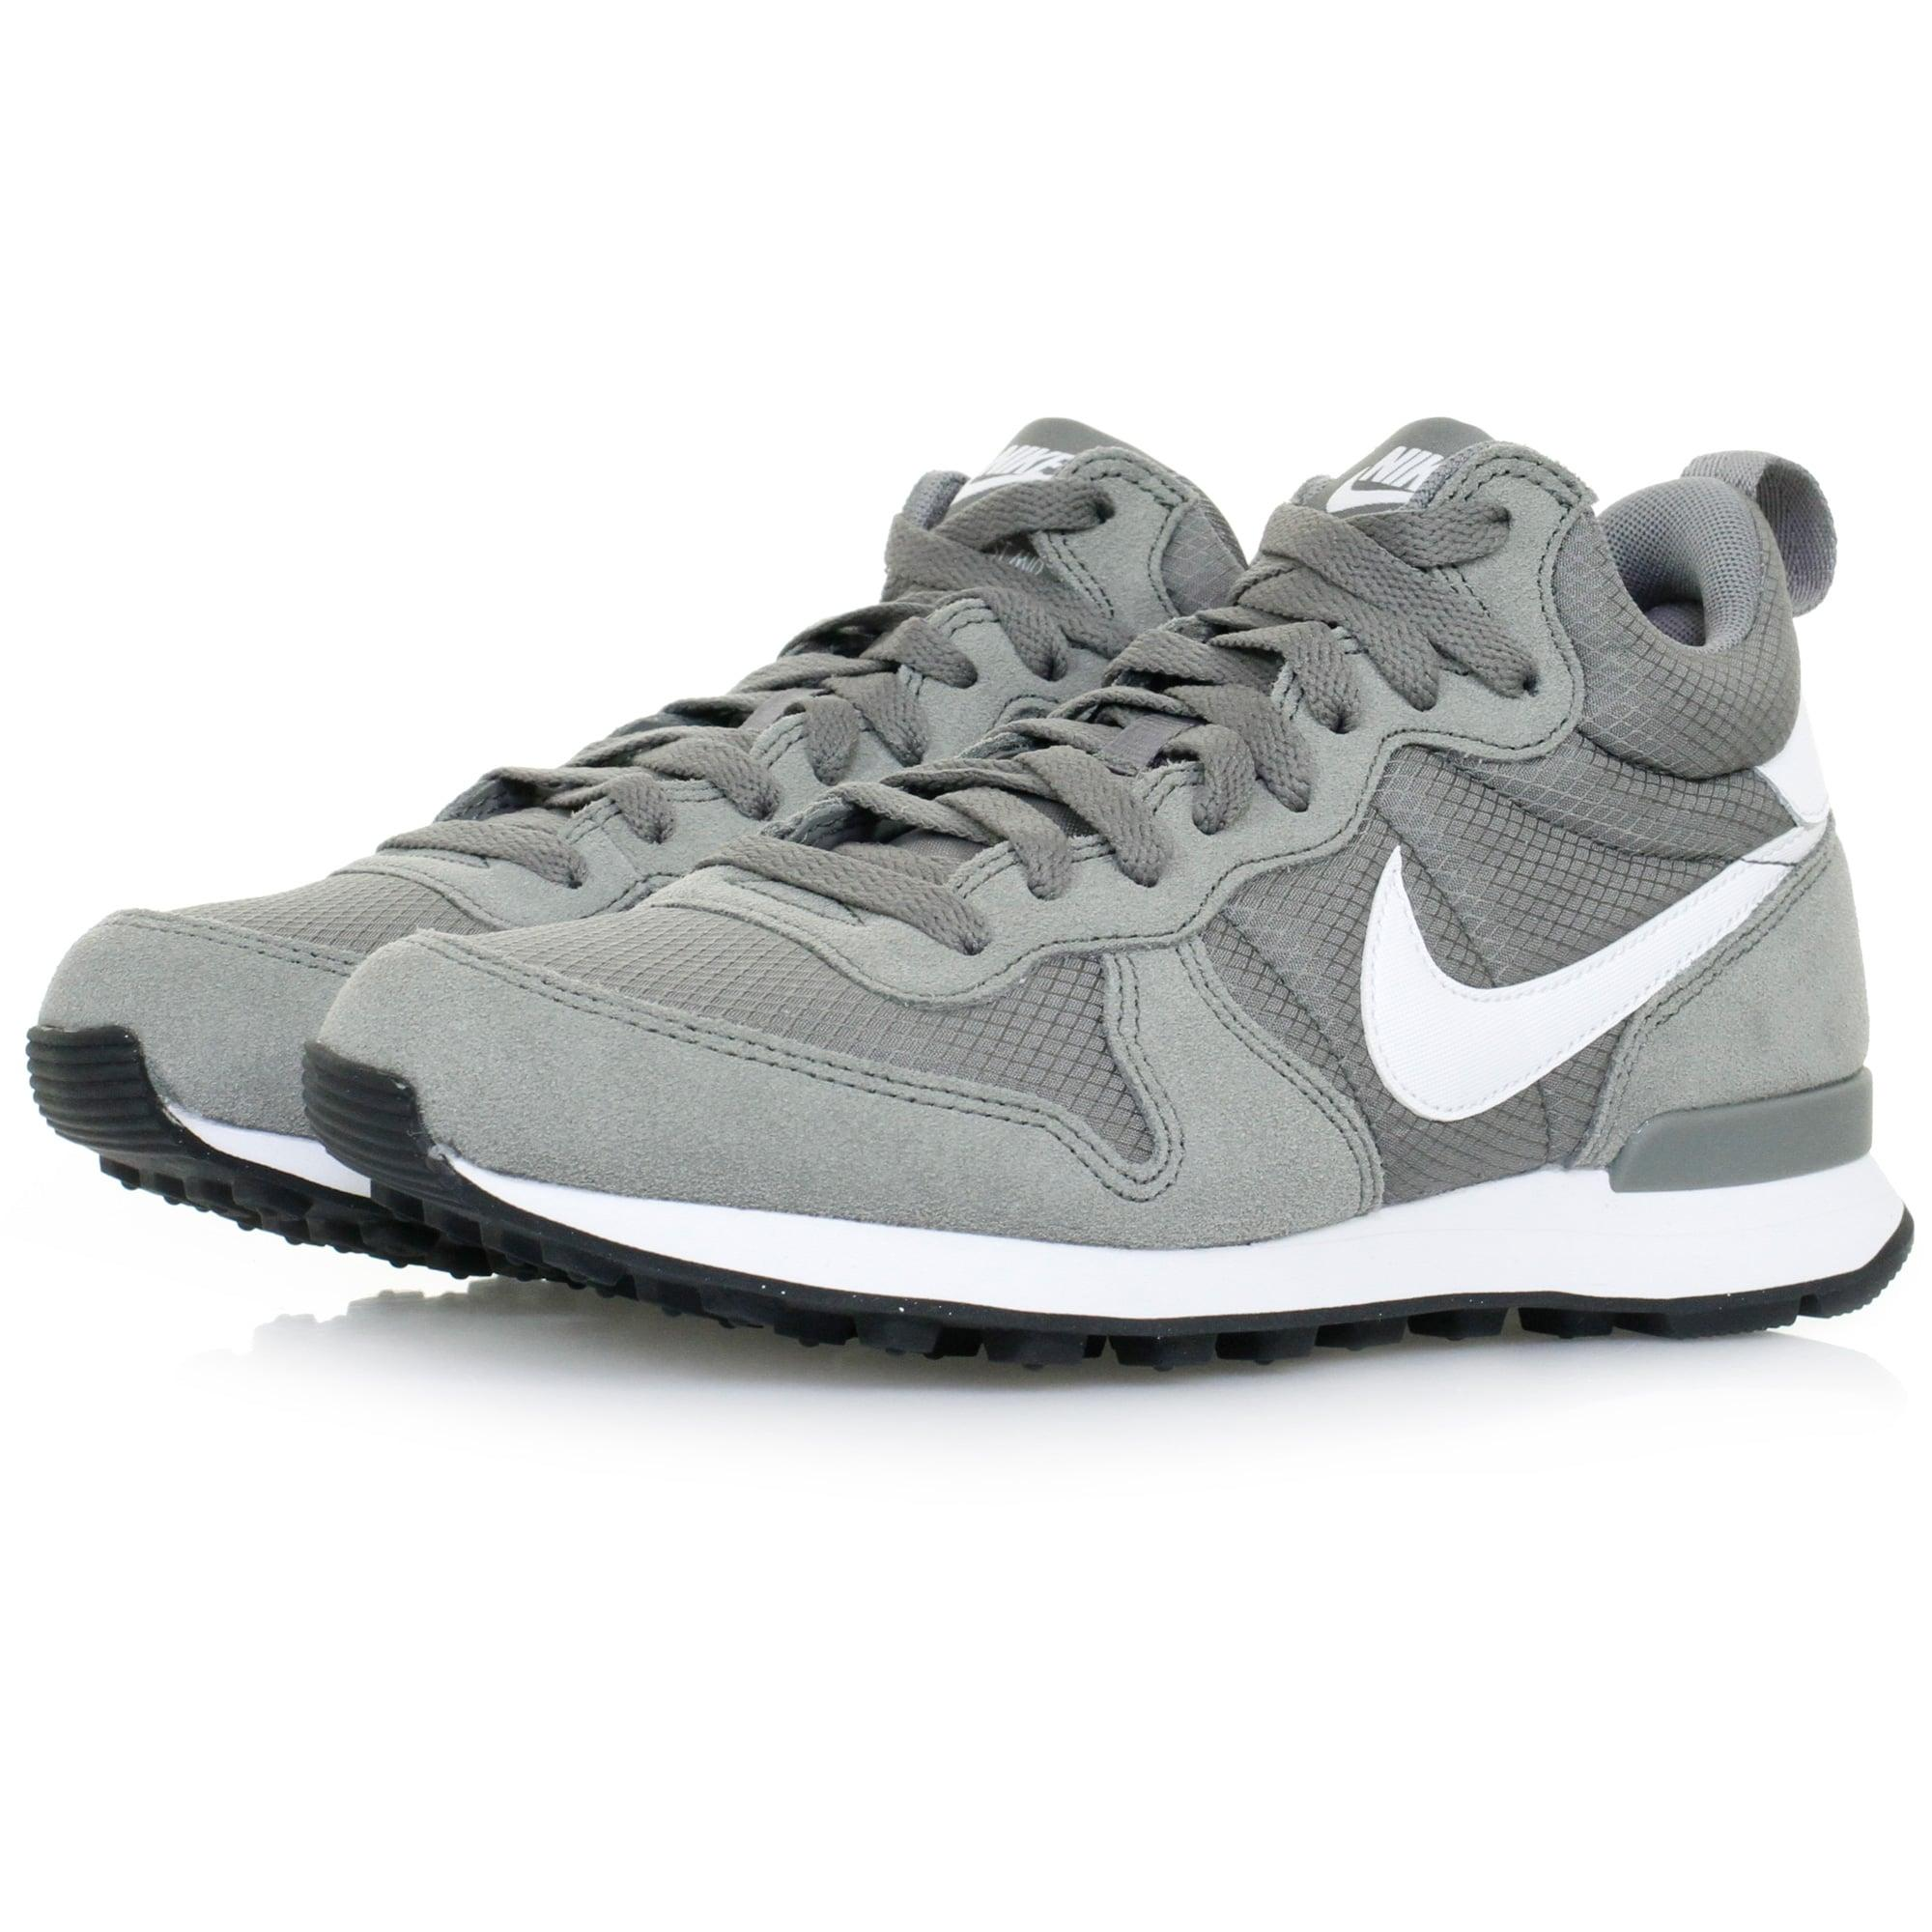 info for ba4a7 3befe Lyst - Nike Internationalist Mid Leather Tumbled Grey Shoe in Gray ...